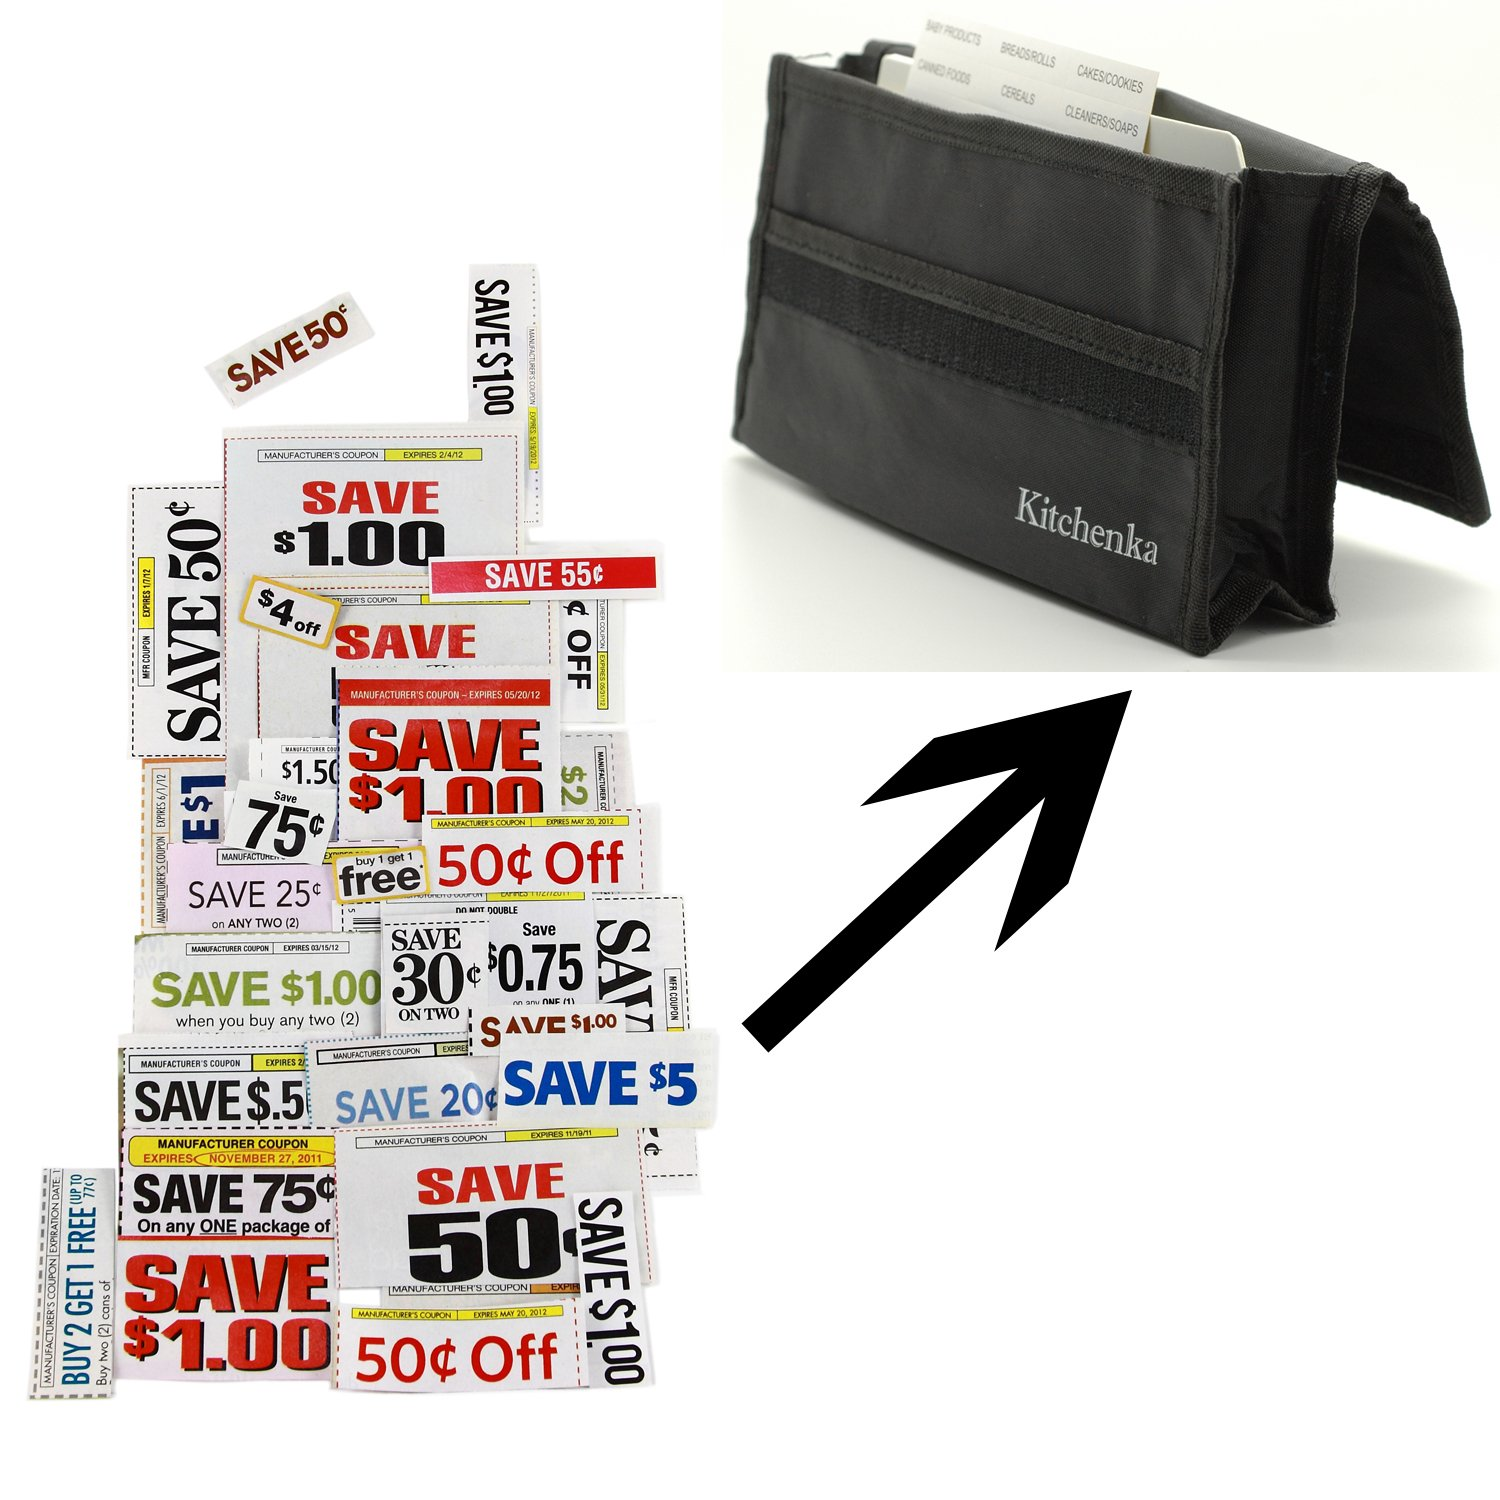 Coupon master clipping service - Amazon Com Coupon Organizer For Purse Deluxe Magic Binder Best Extreme Couponing For Every Mom The Only Coupon Caddy Wallet Holder You Will Ever Need